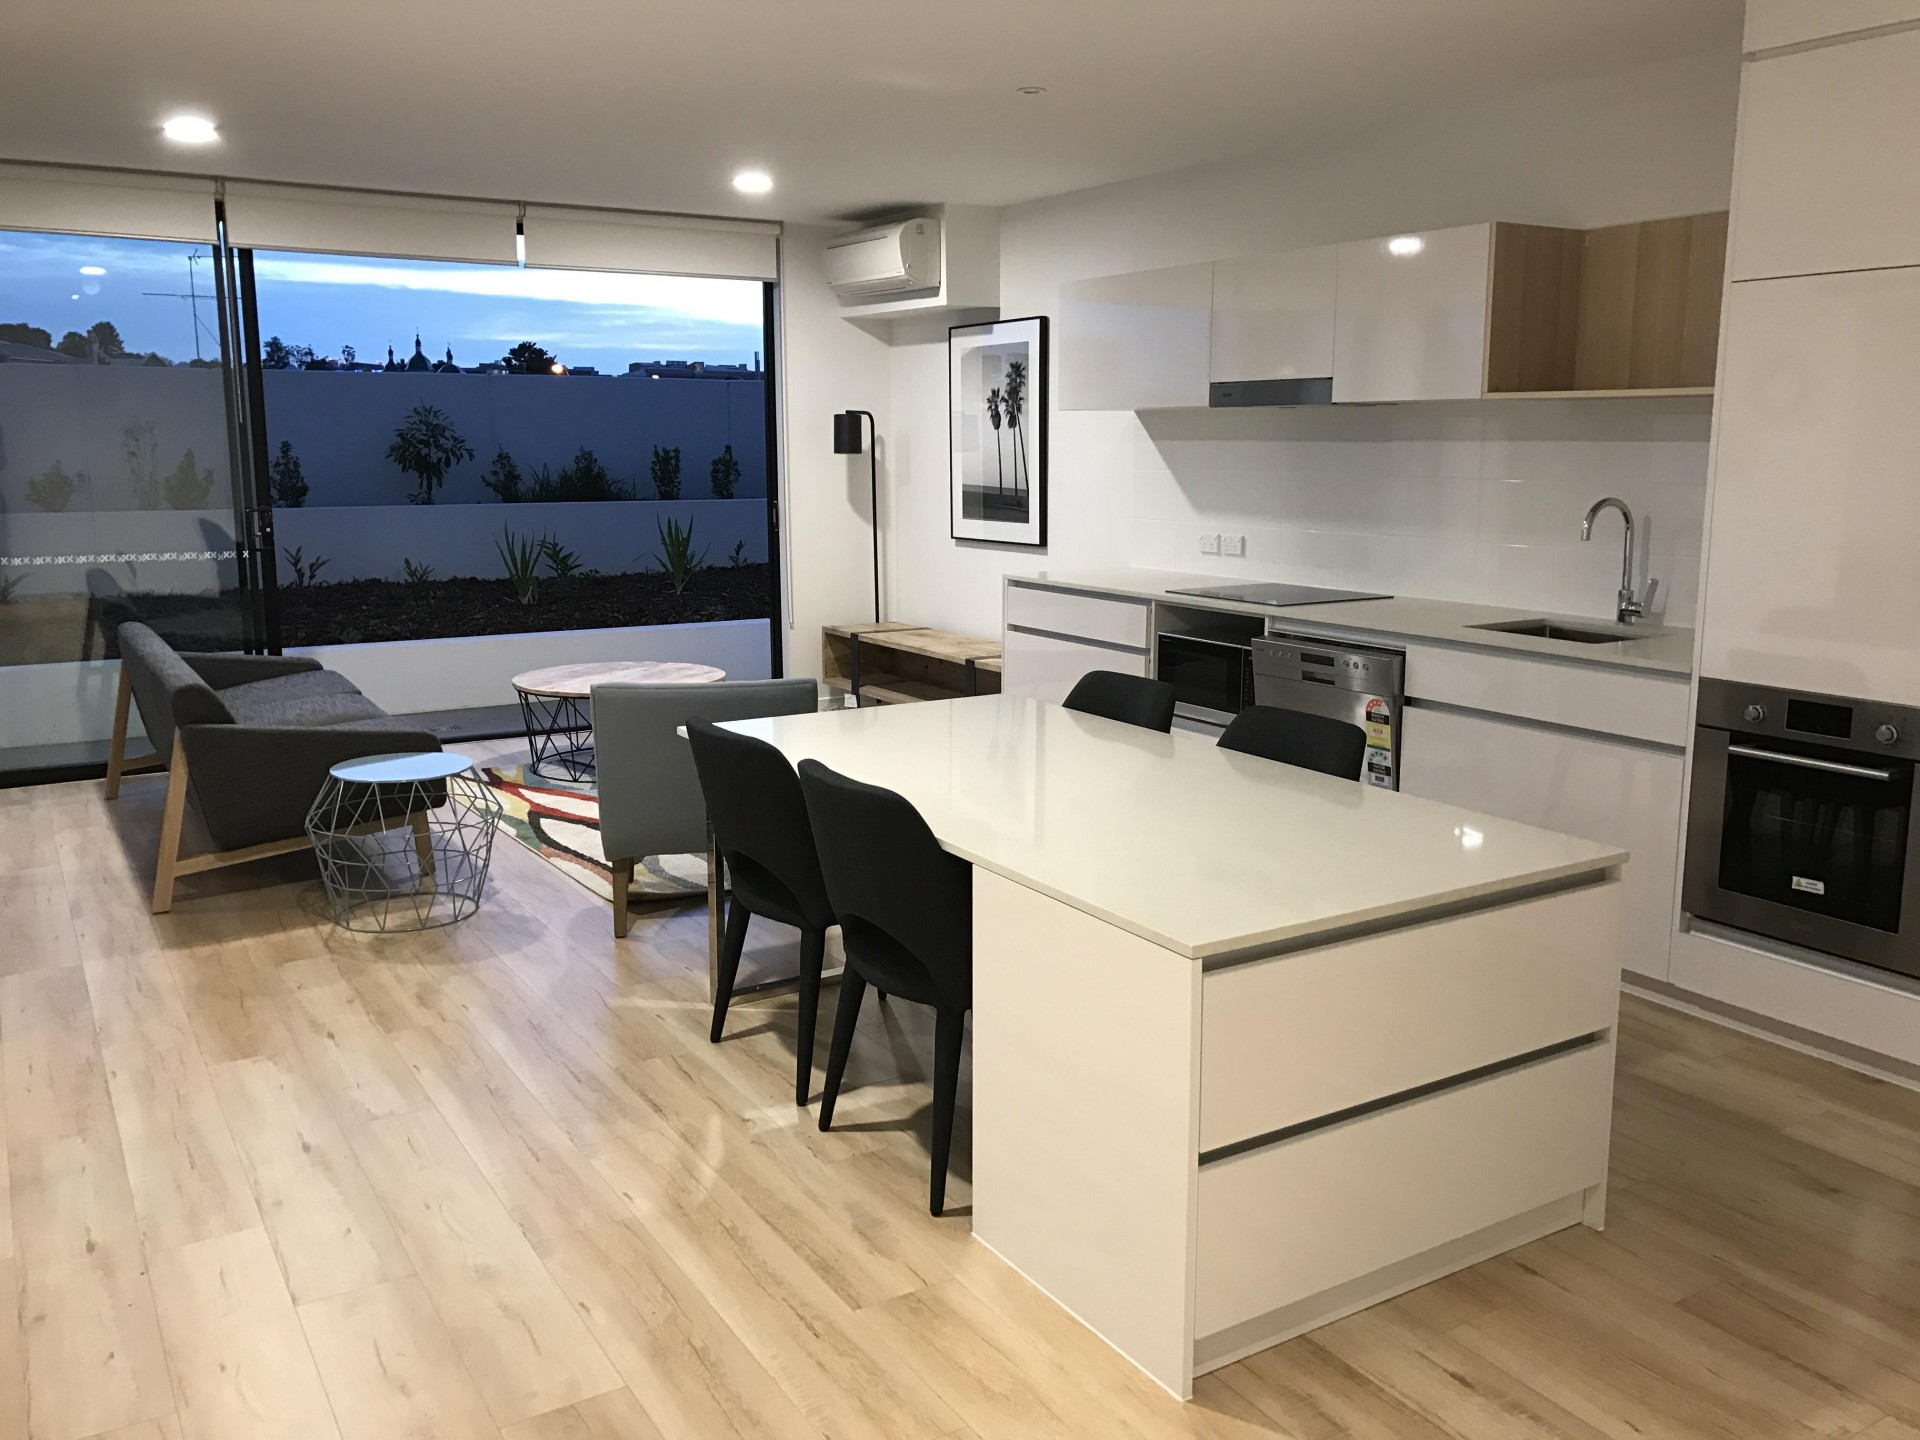 Excellent furnished unit with private courtyard - $410.00pw